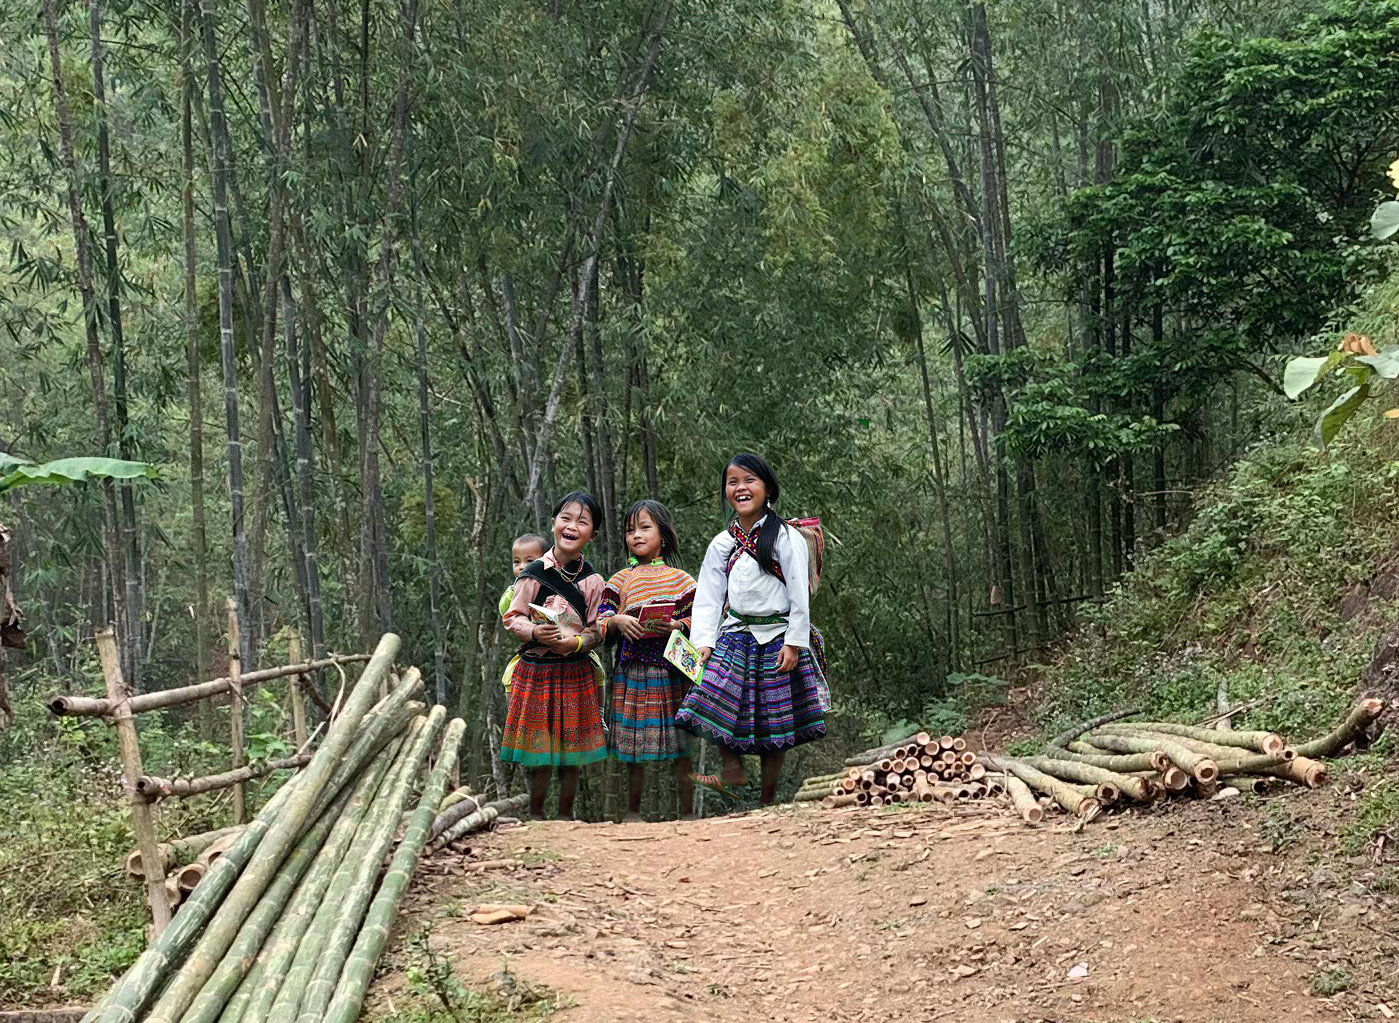 Bamboo empowers Sustainable Development in Vietnam